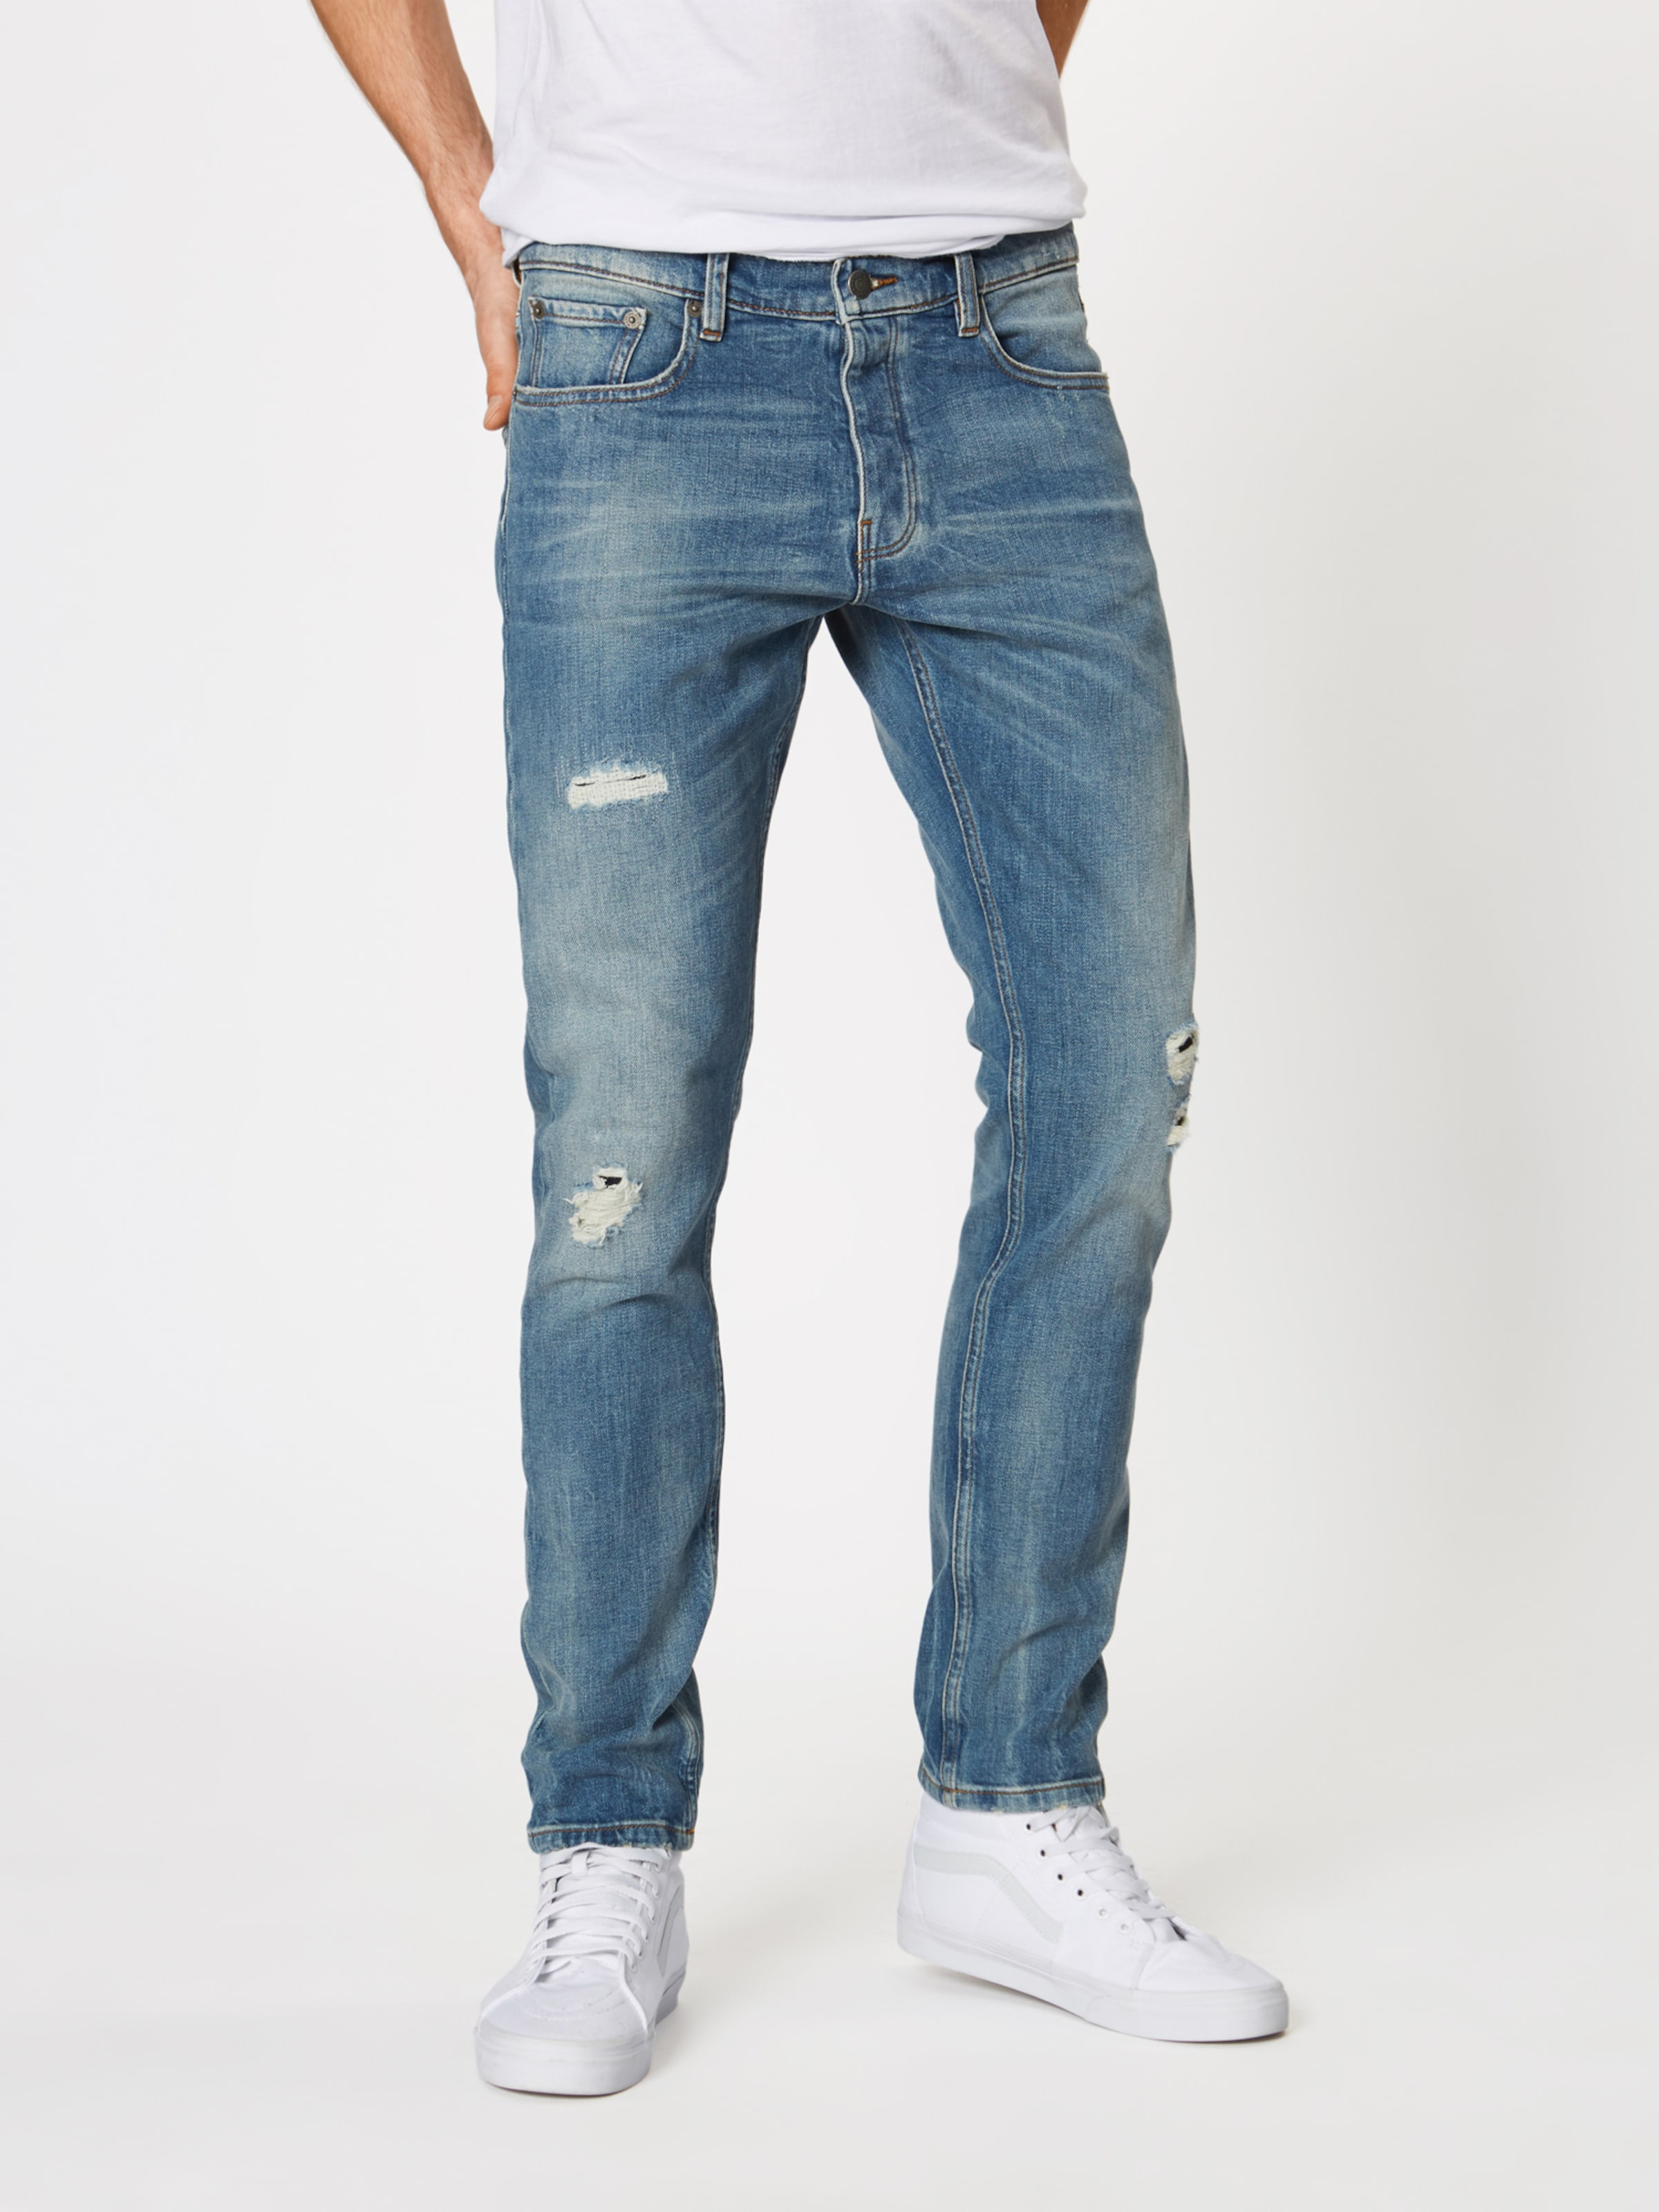 Jeans Kooples Blue In The Denim LSpUqzMGV